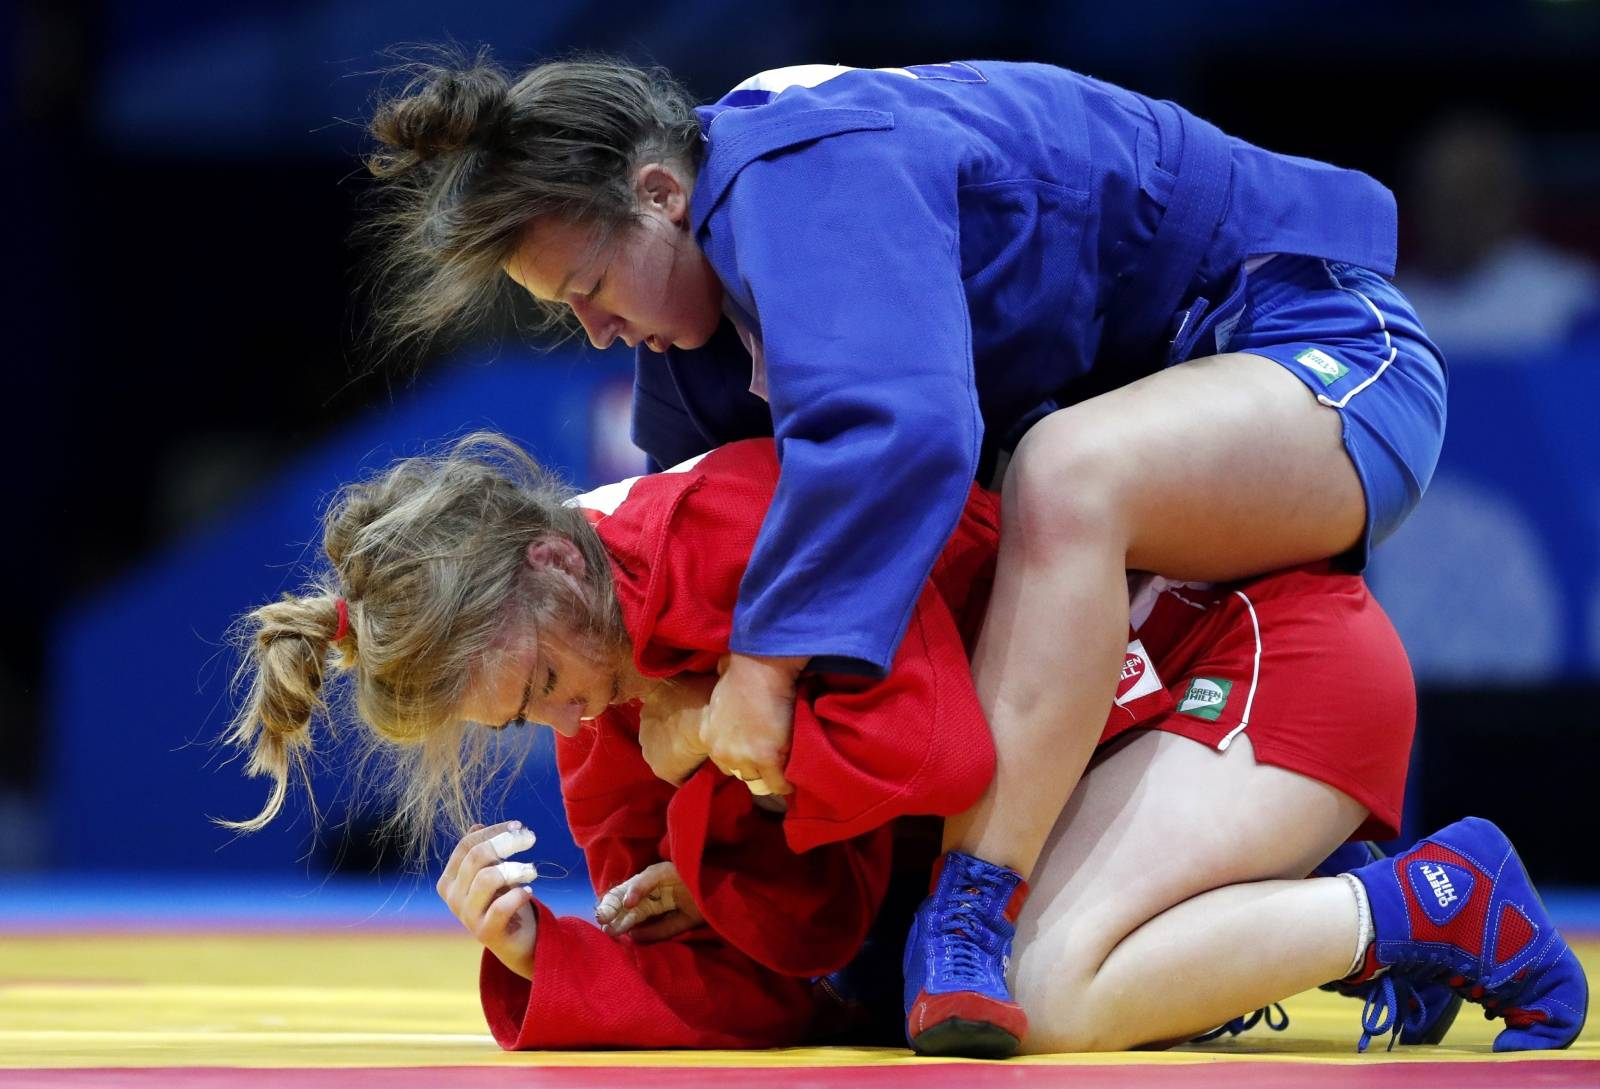 2019 European Games - Judo - Sambo - Women's -68kg